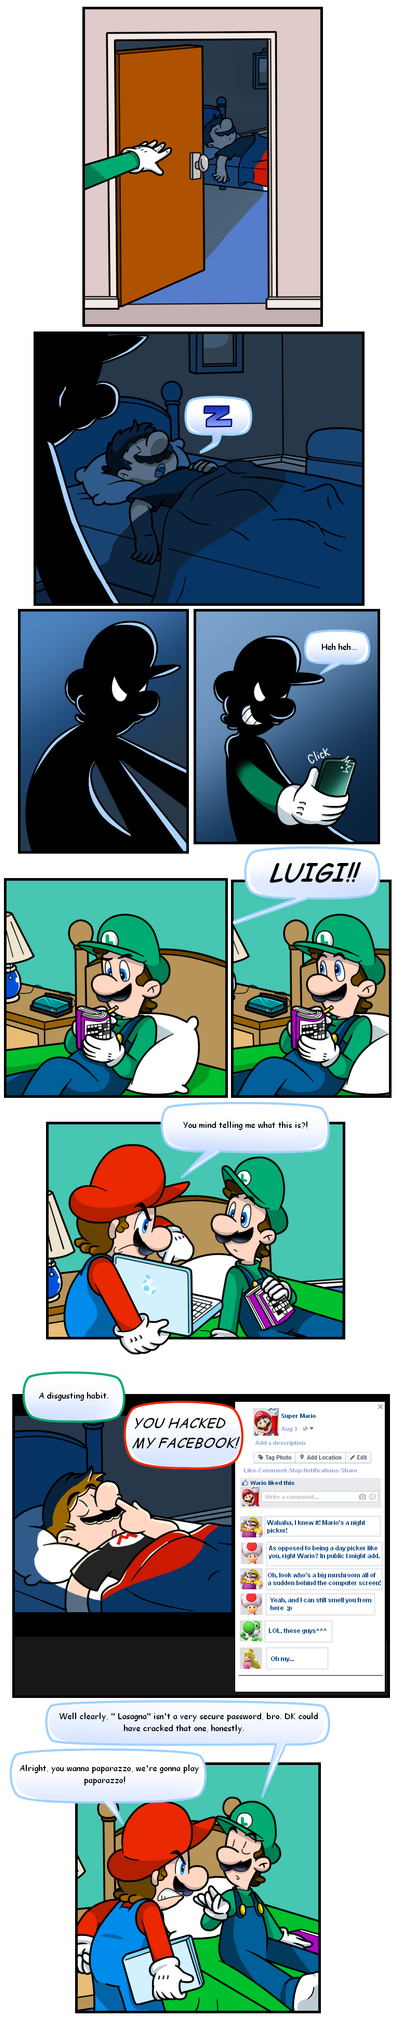 Pranksters 2: Page 3 by Nintendrawer